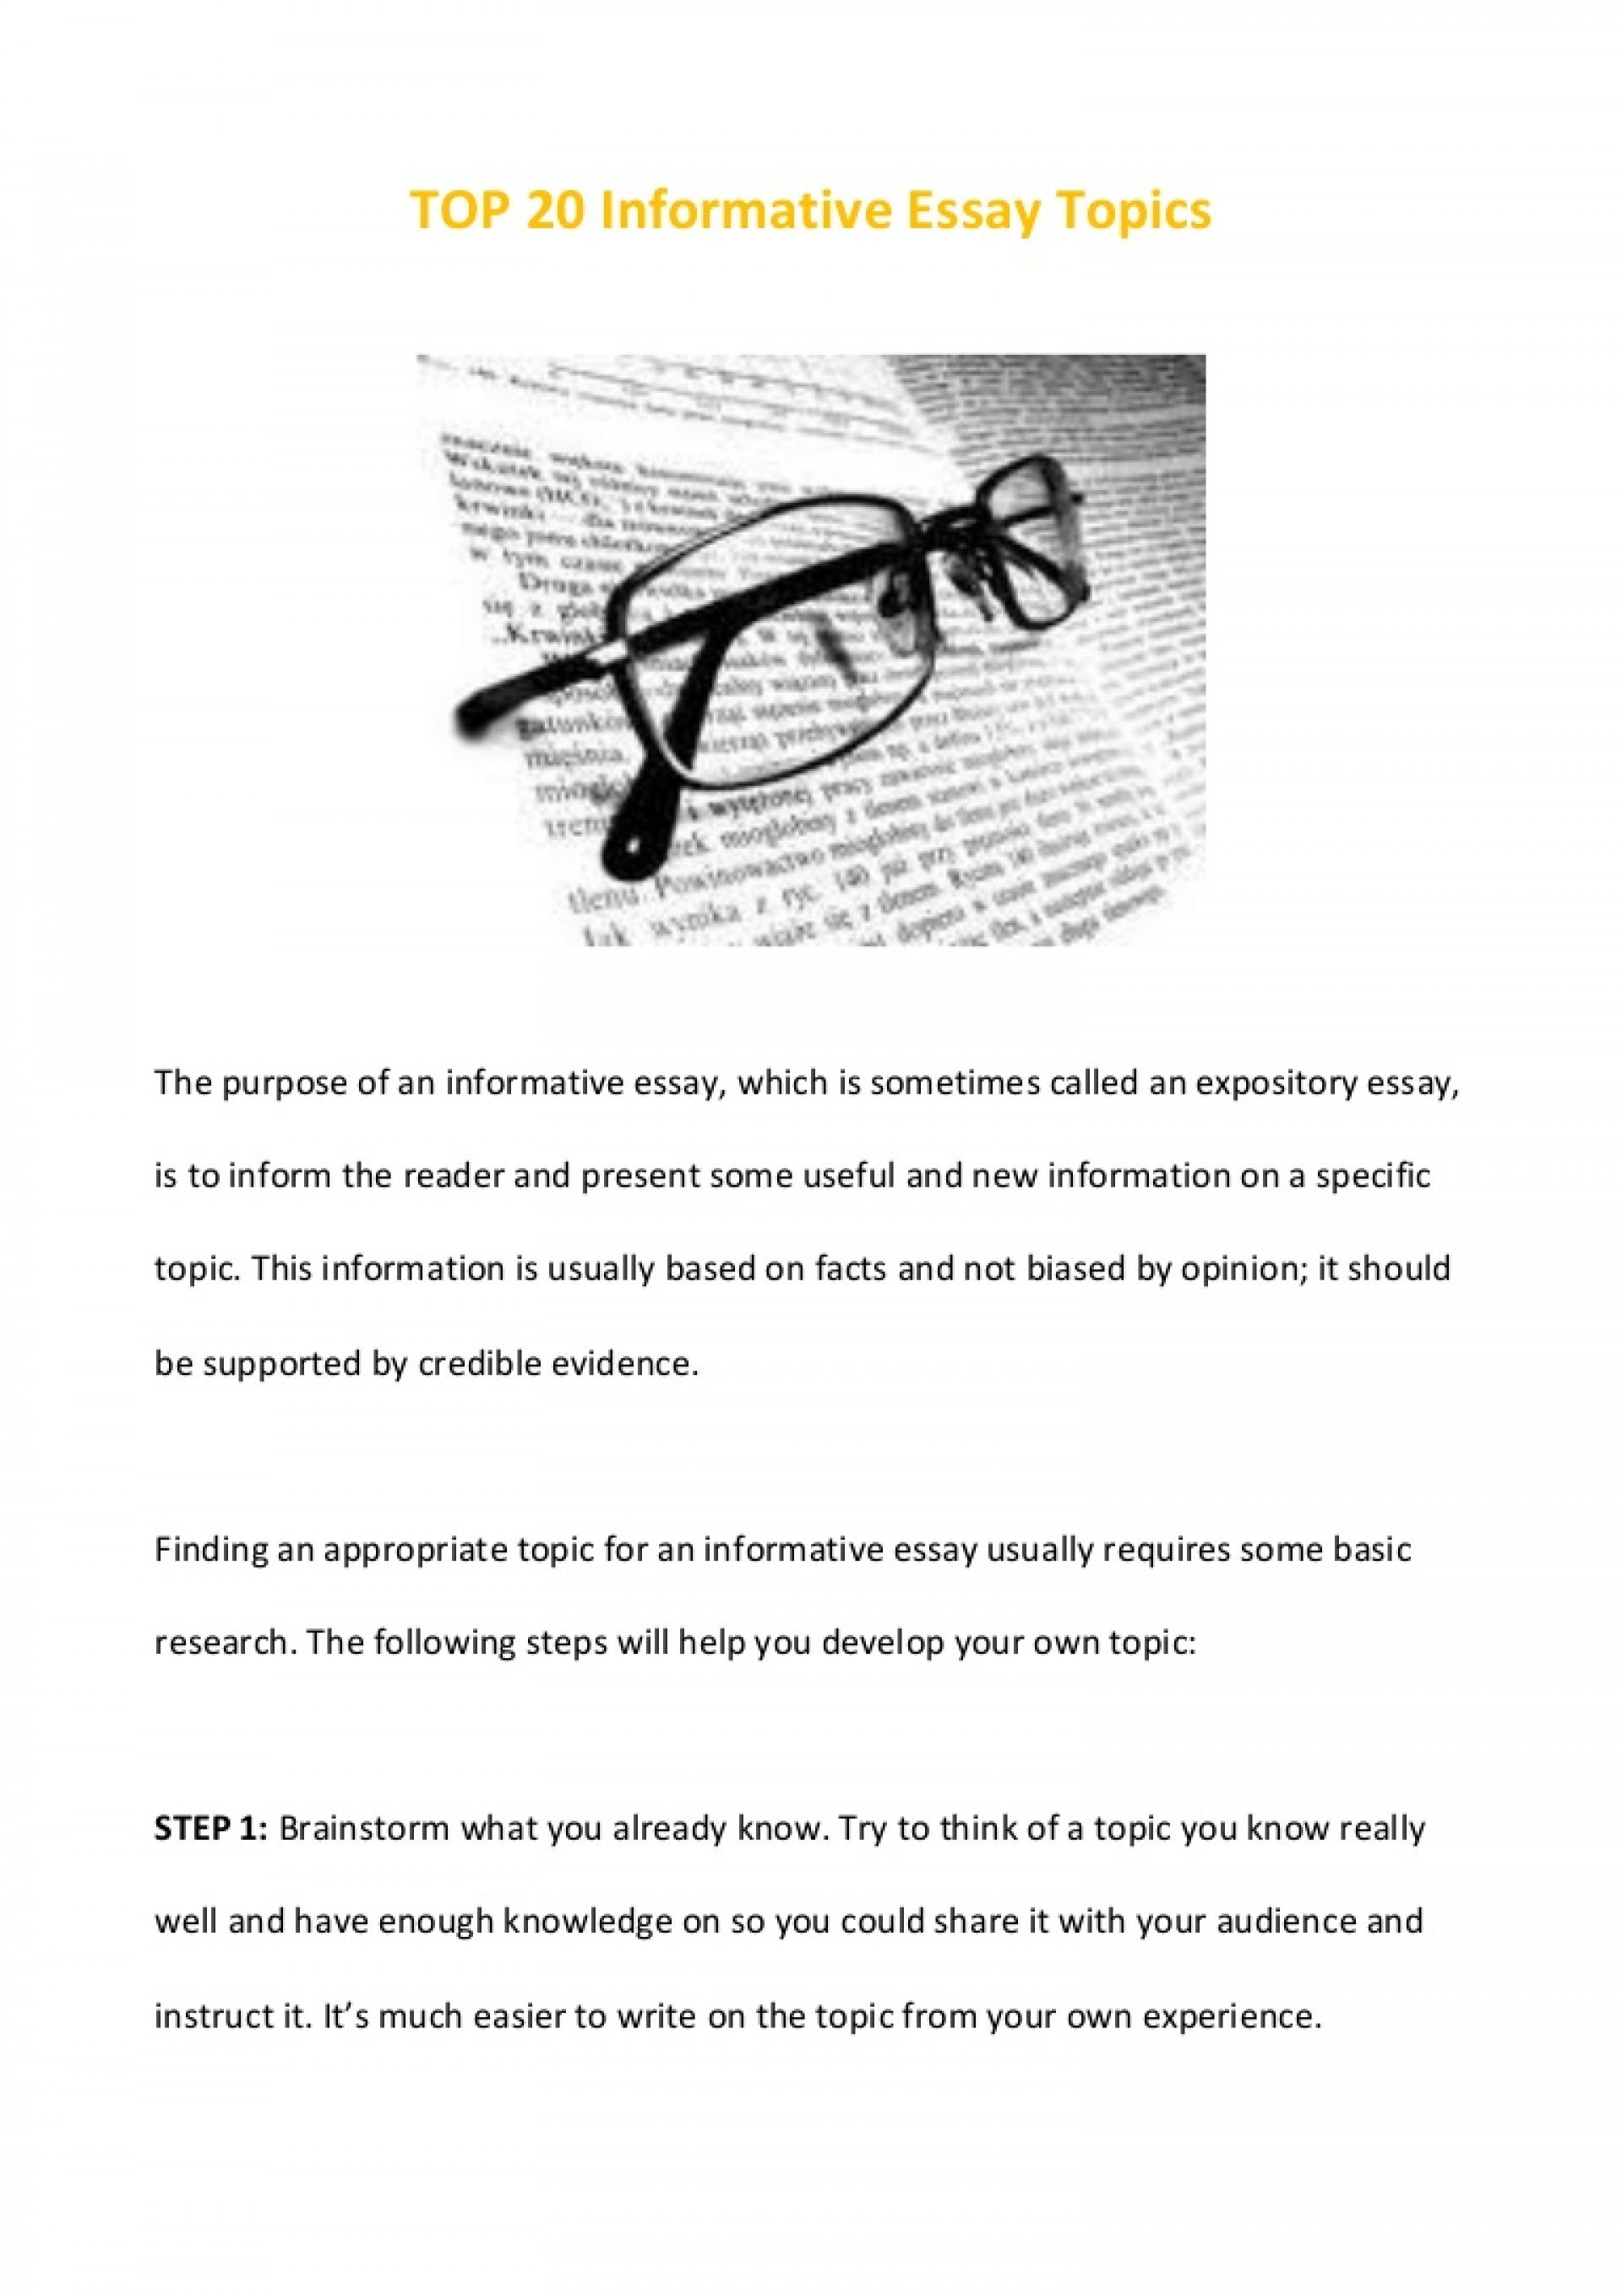 011 Essay Example Top20informativeessaytopics Phpapp02 Thumbnail Informative Remarkable Topics Expository For Secondary School 4th Grade 5th 1920